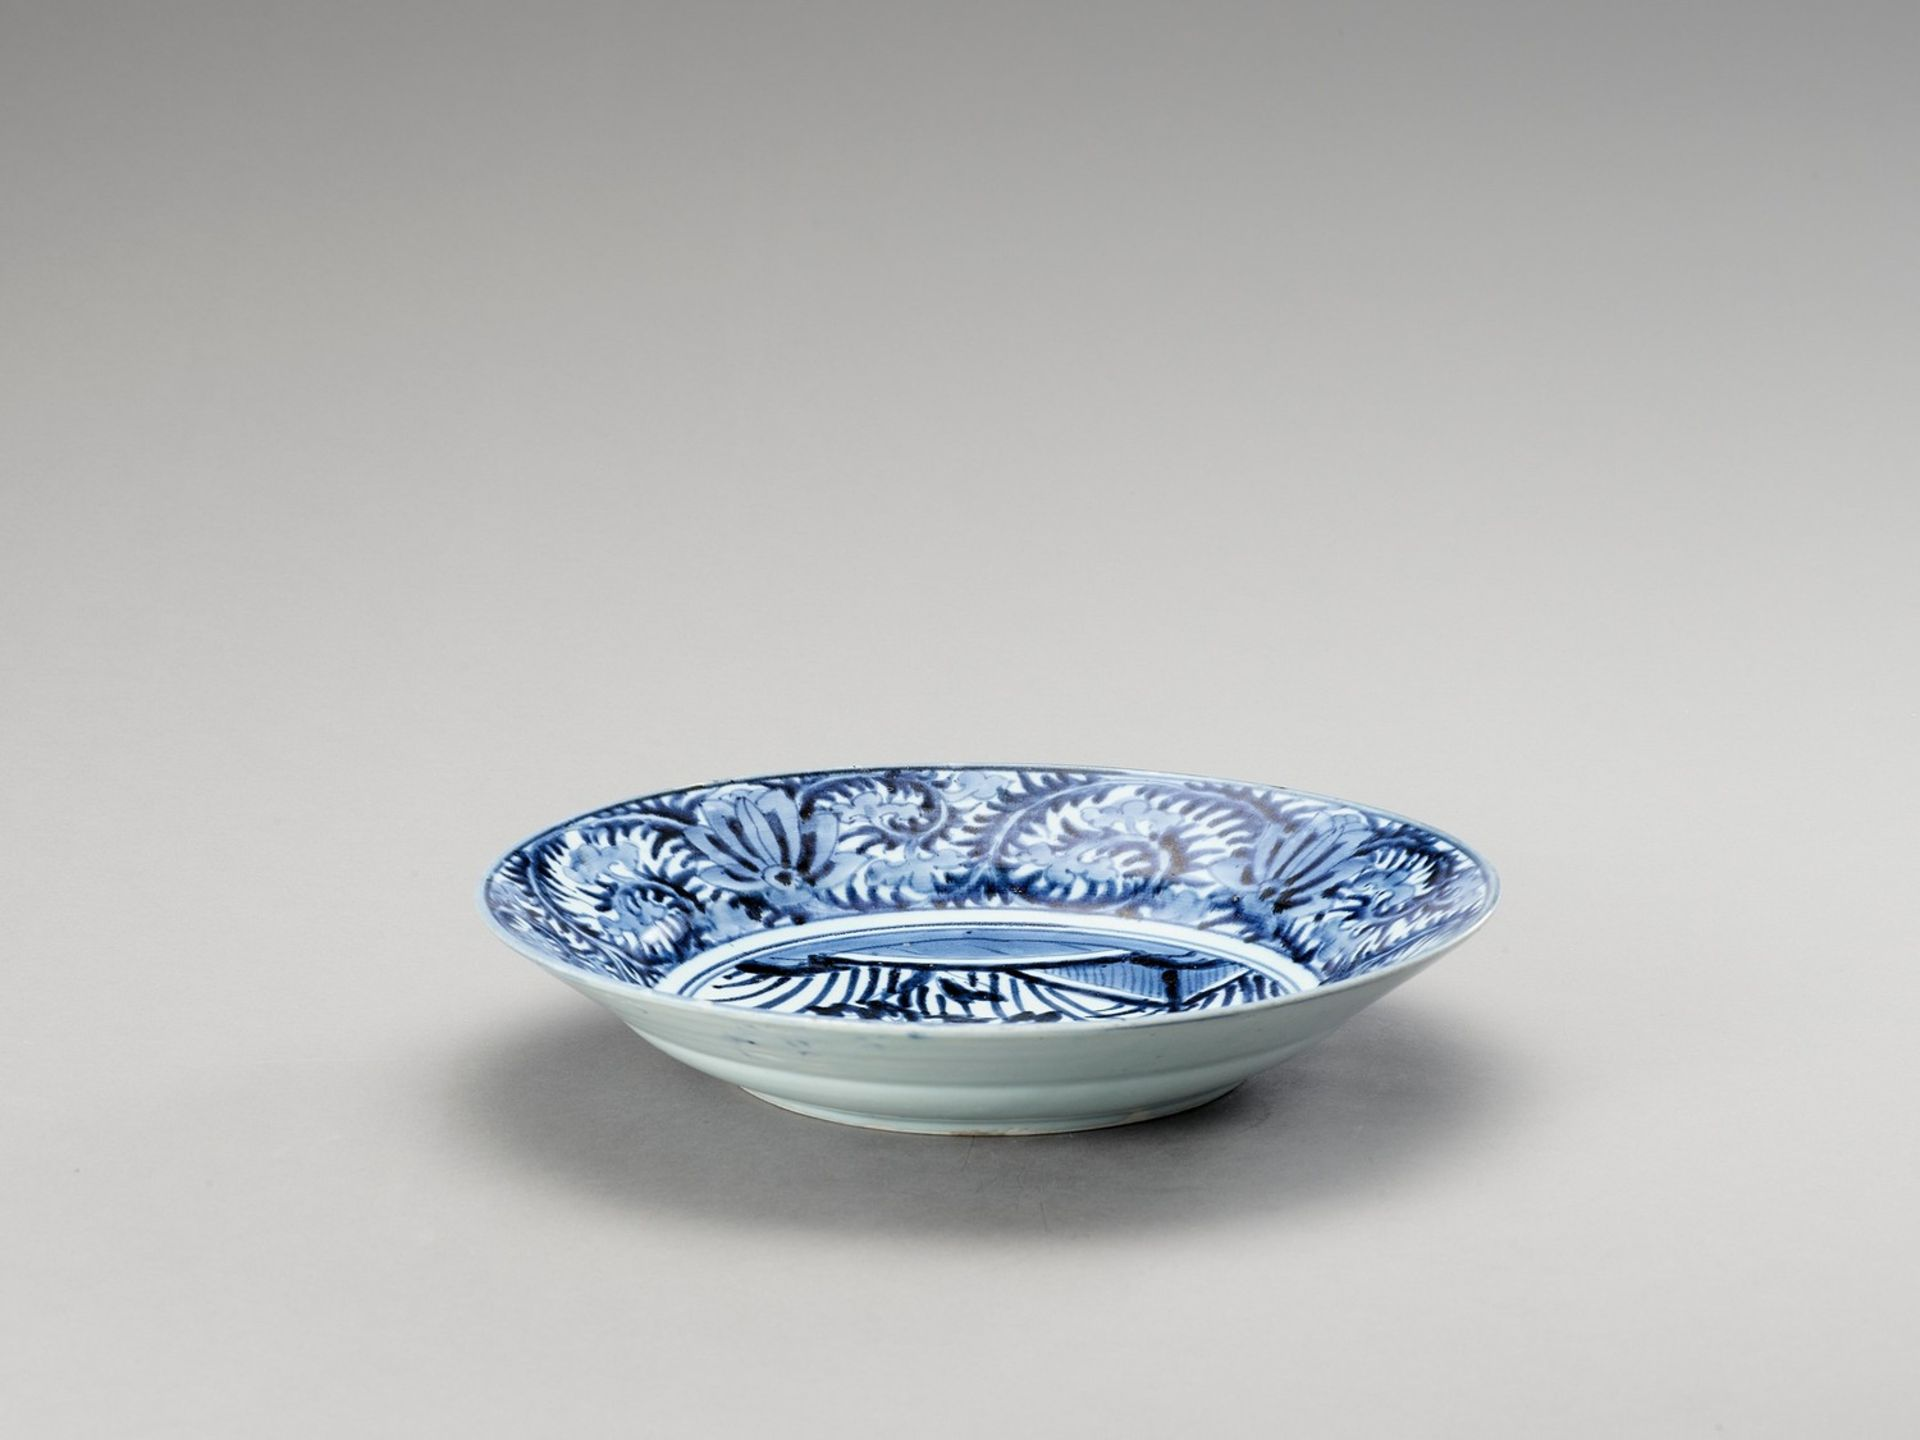 A BLUE AND WHITE 'FLORAL' PORCELAIN CHARGER - Image 4 of 4